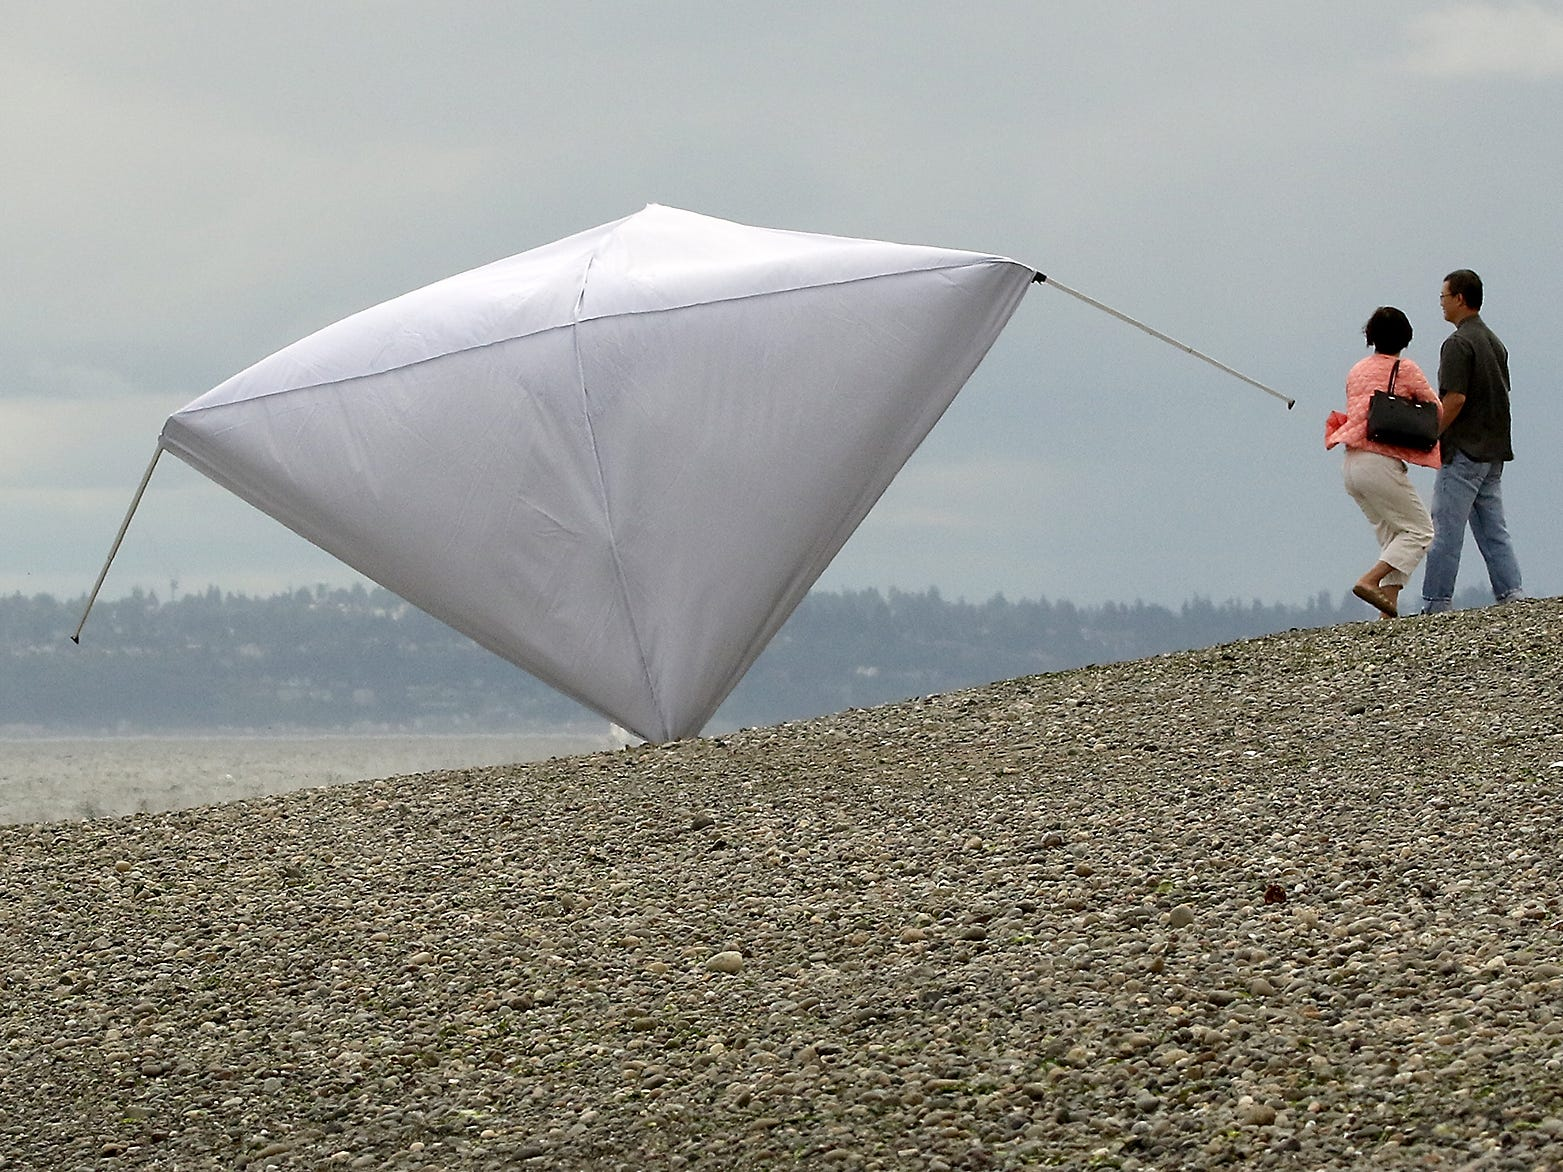 A pair of beach walkers move out of the way as a large tent tumbles down the beach after a gust of wind picked it up at Bainbridge Island's Fay Bainbridge Park on Saturday, August 11, 2018.